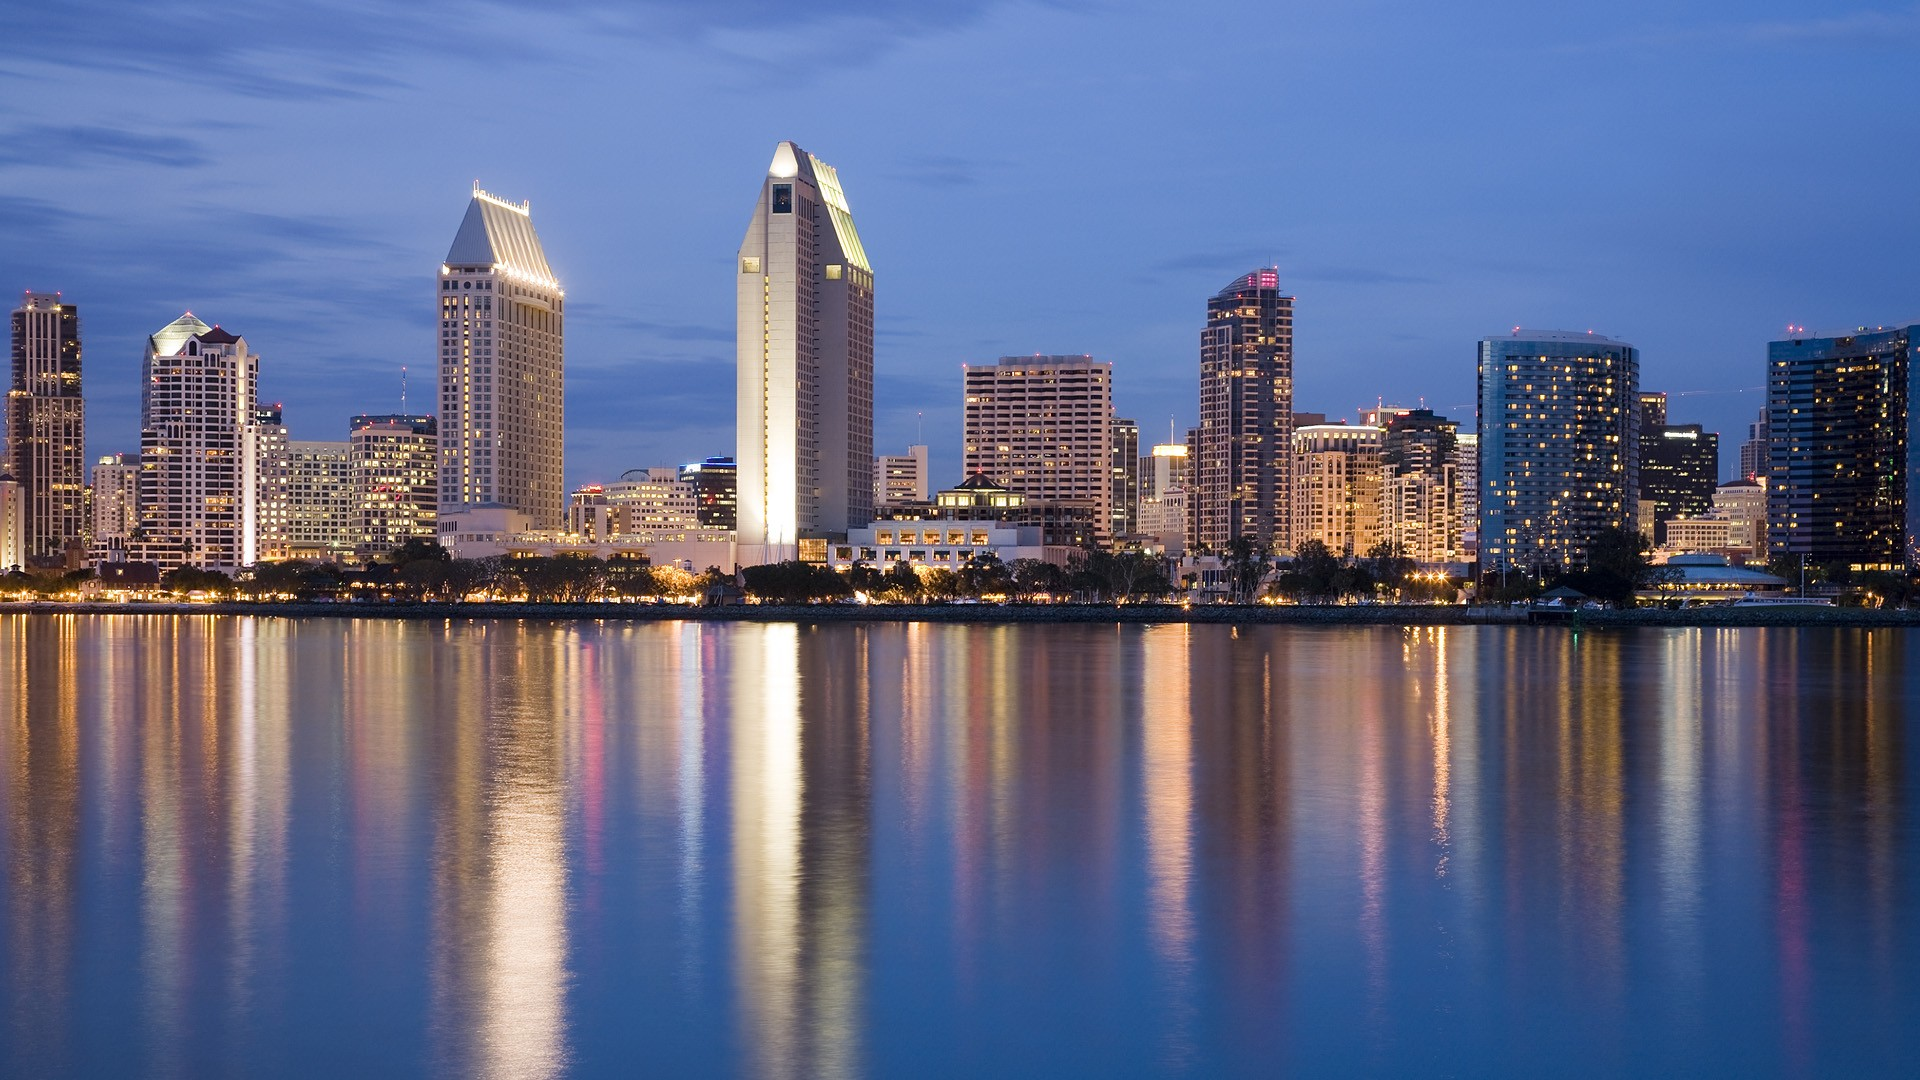 cityscapes California San Diego wallpaper background 1920x1080